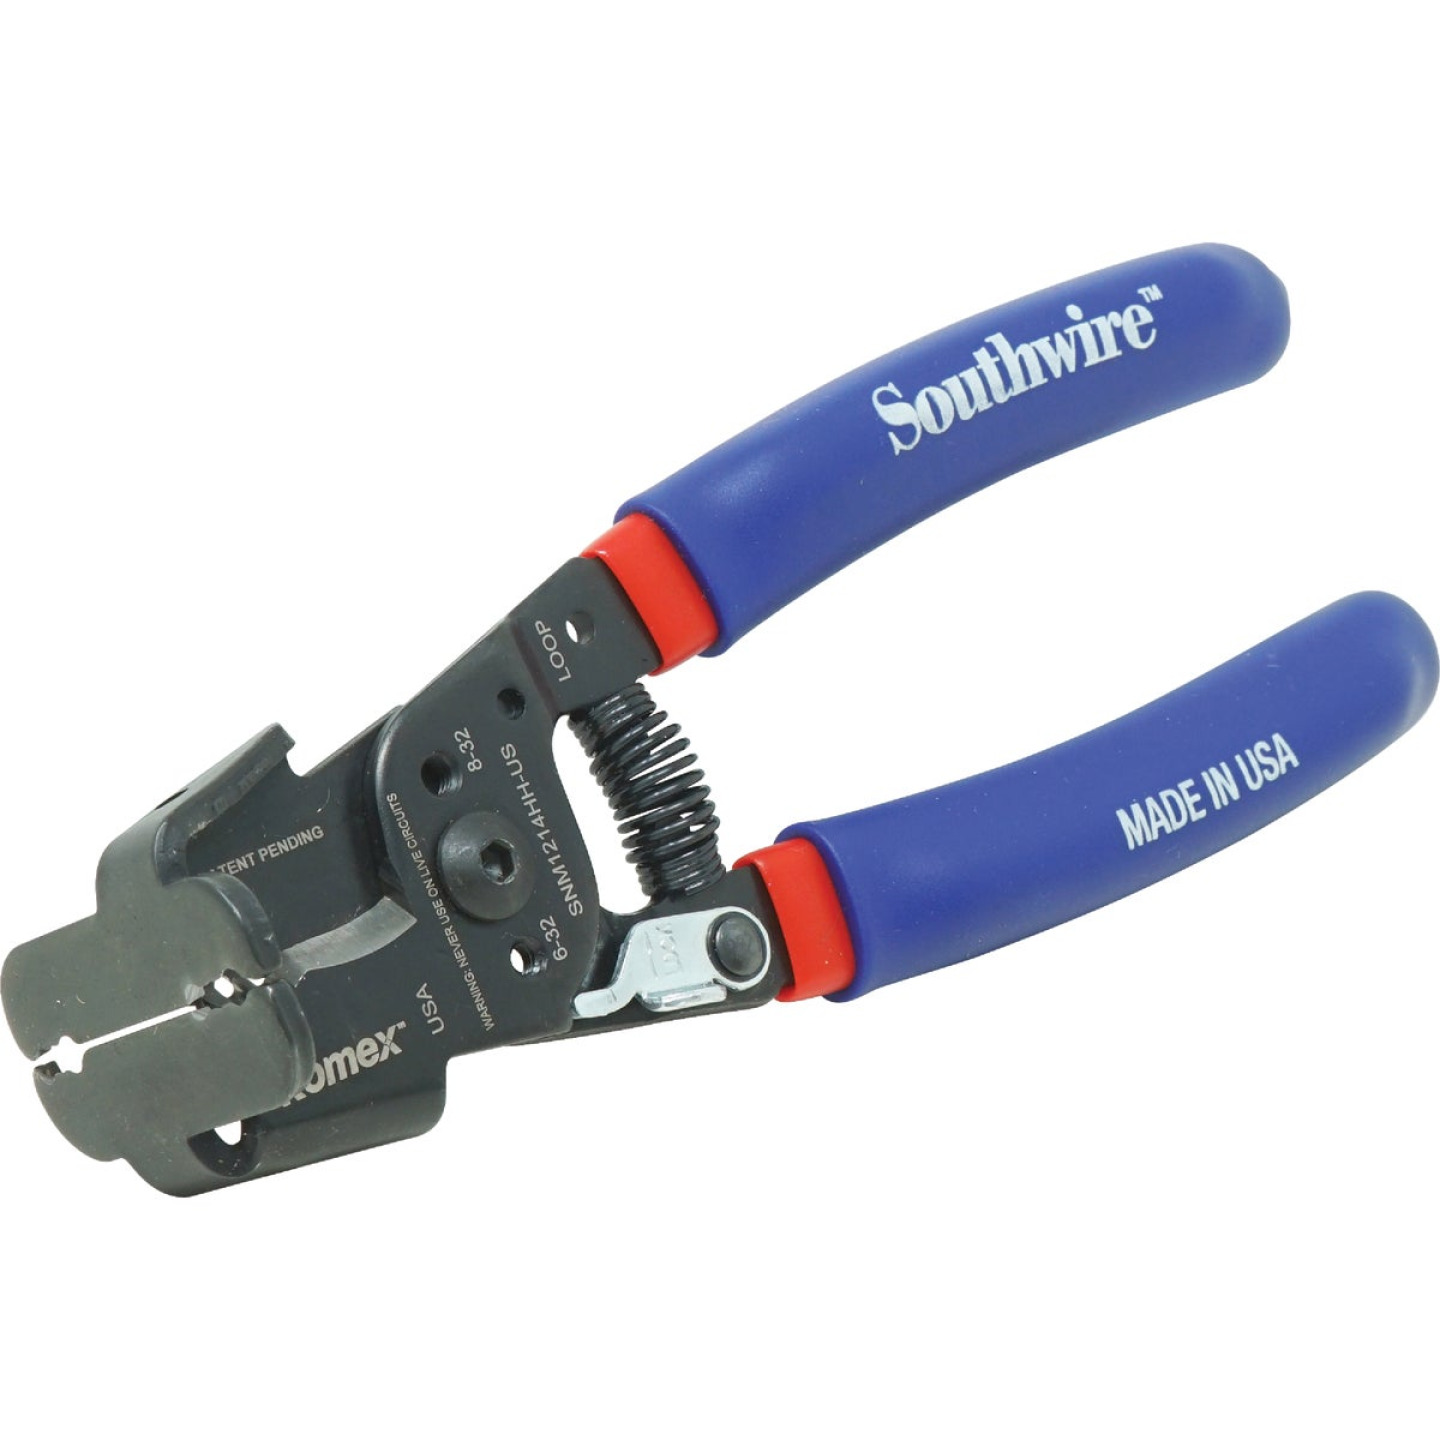 Southwire 9-1/2 In. 12 AWG to 14 AWG Romex Box Jaw Wire Stripper Image 1